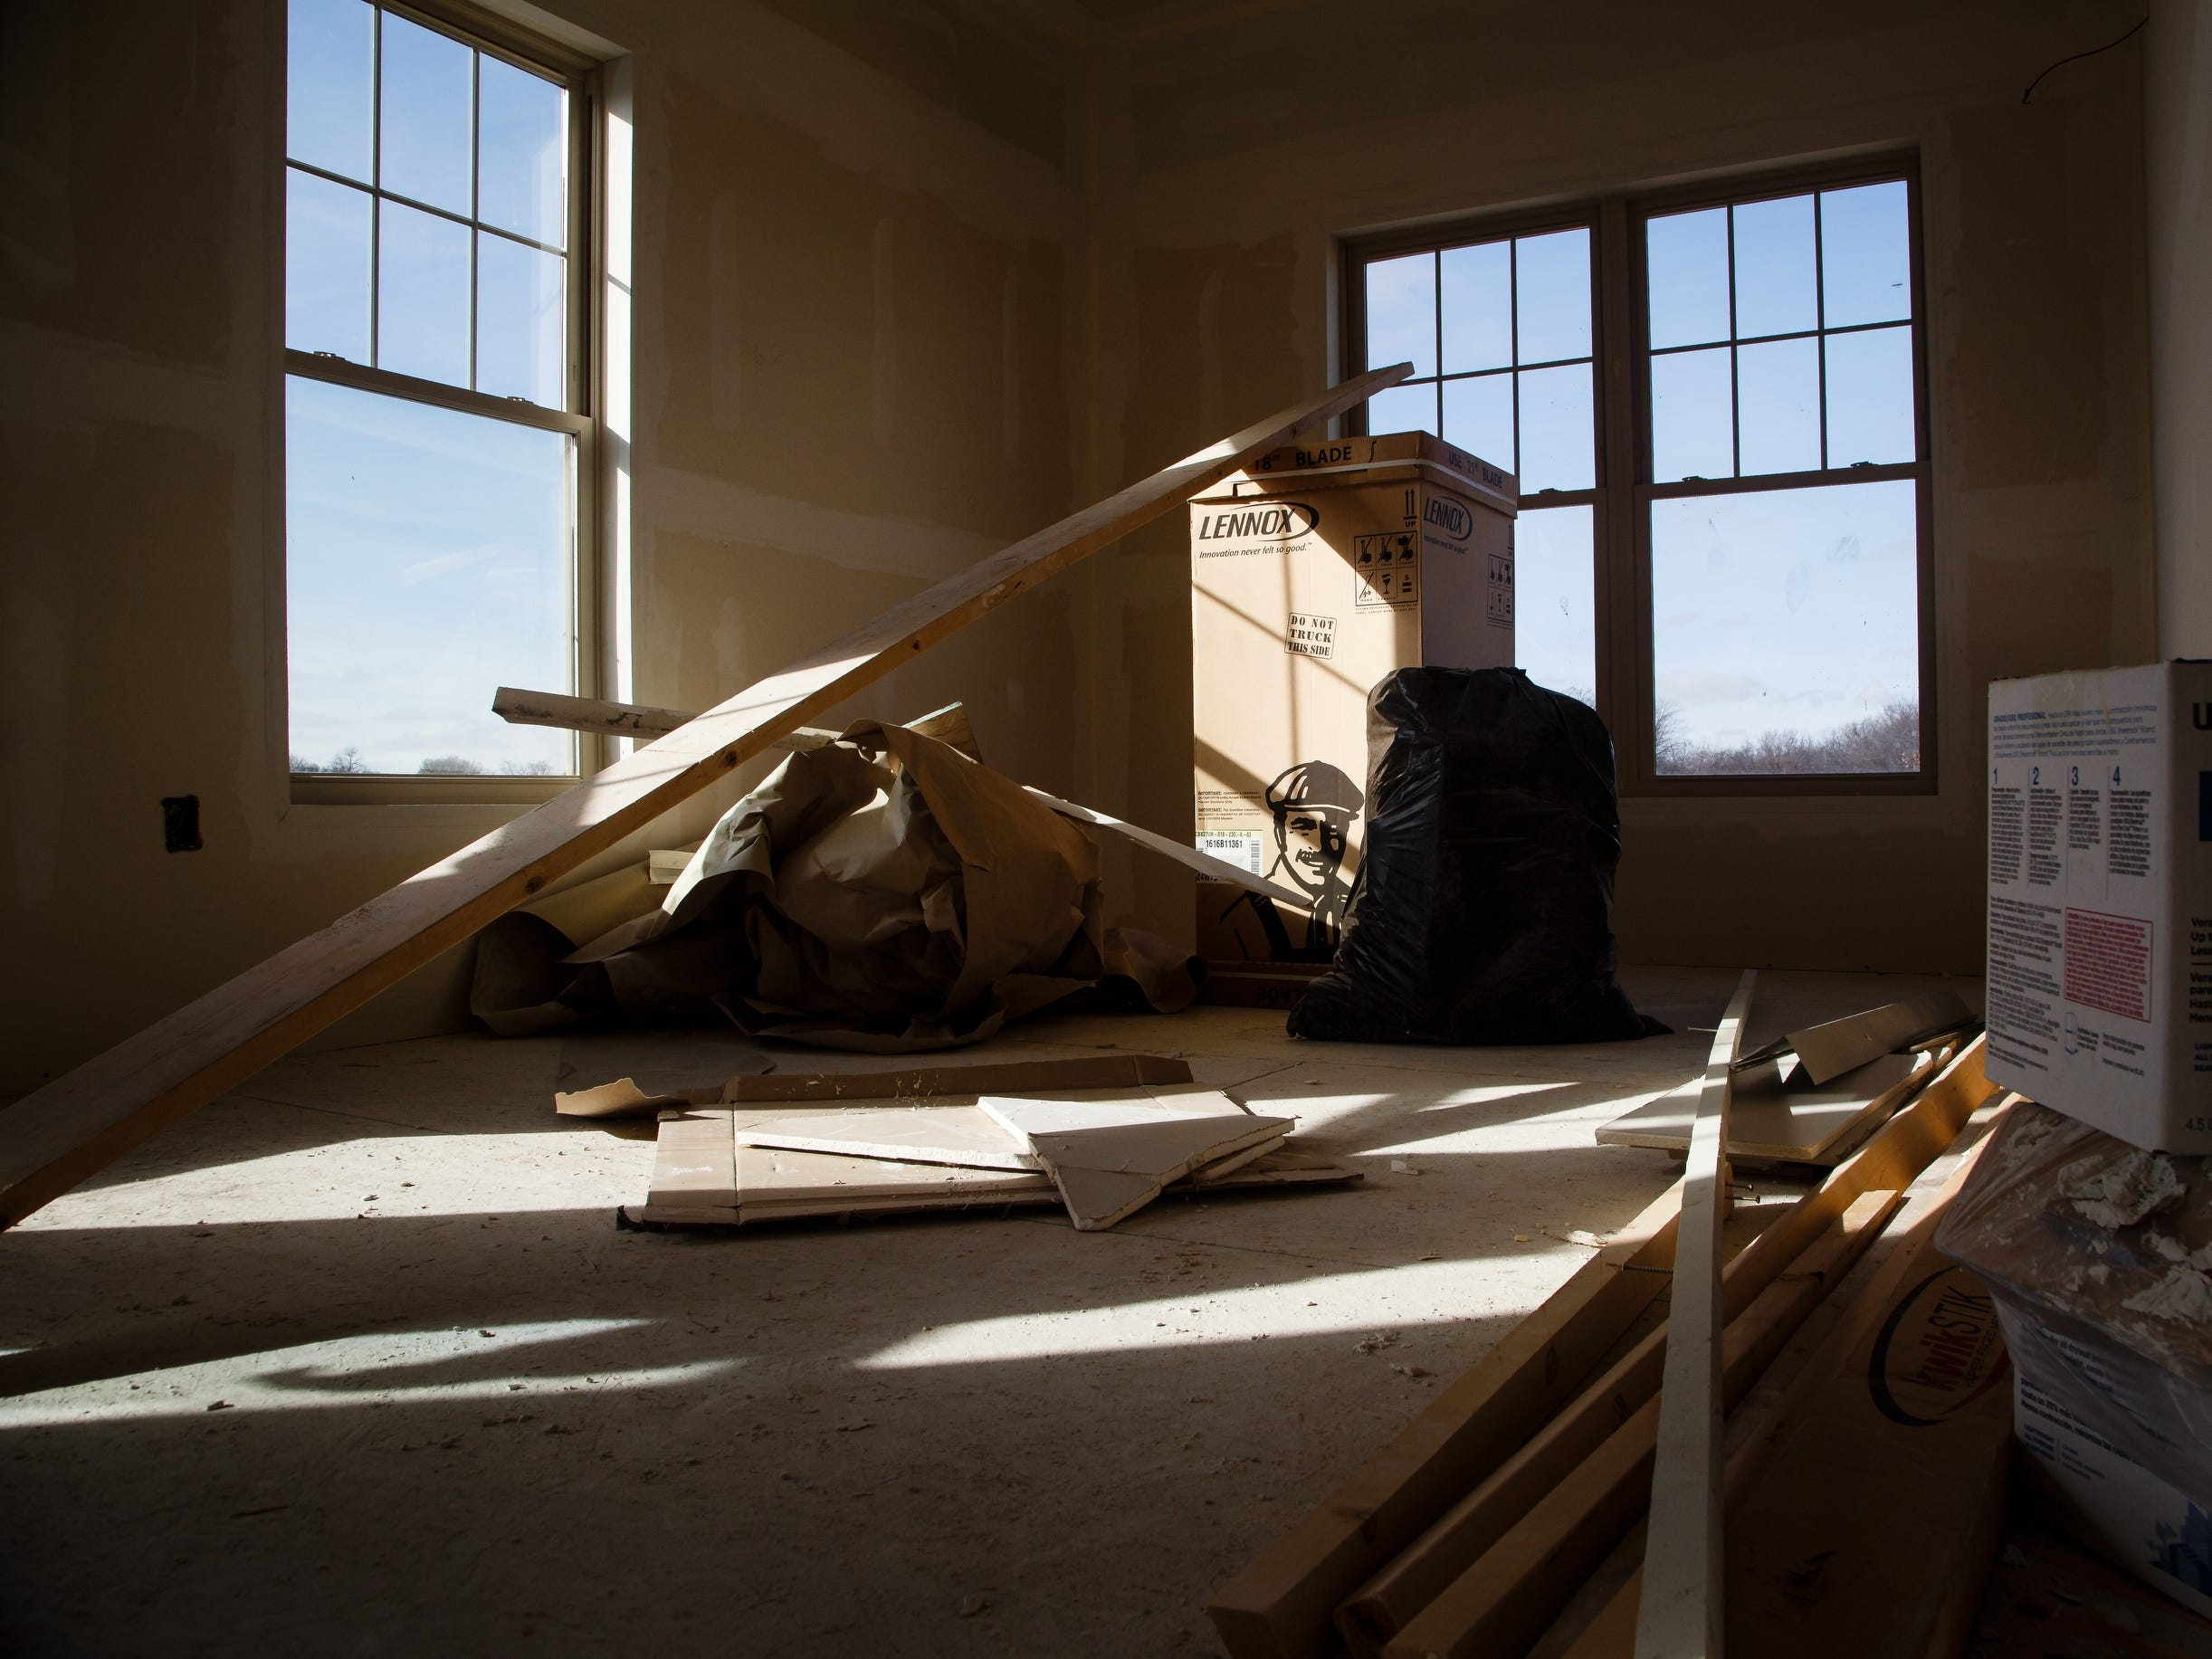 Building materials sit in an unfinished kitchen of an apartment in McQuillen Place on Wednesday, Jan. 16, 2019, in Charles City. The project sits on a corner of Charles City's busiest intersection and includes one floor of Main Street retail space with two floors of apartments. Owner Charles Thomson used a multitude of financing deals to fund the project including money from the Iowa Economic Development Authority, whom he claims pulled out after saying he missed an arbitrary deadline. Without the state funding, banks began to pull out of the project which has been sitting vacant and about 90 percent  complete for the past year.